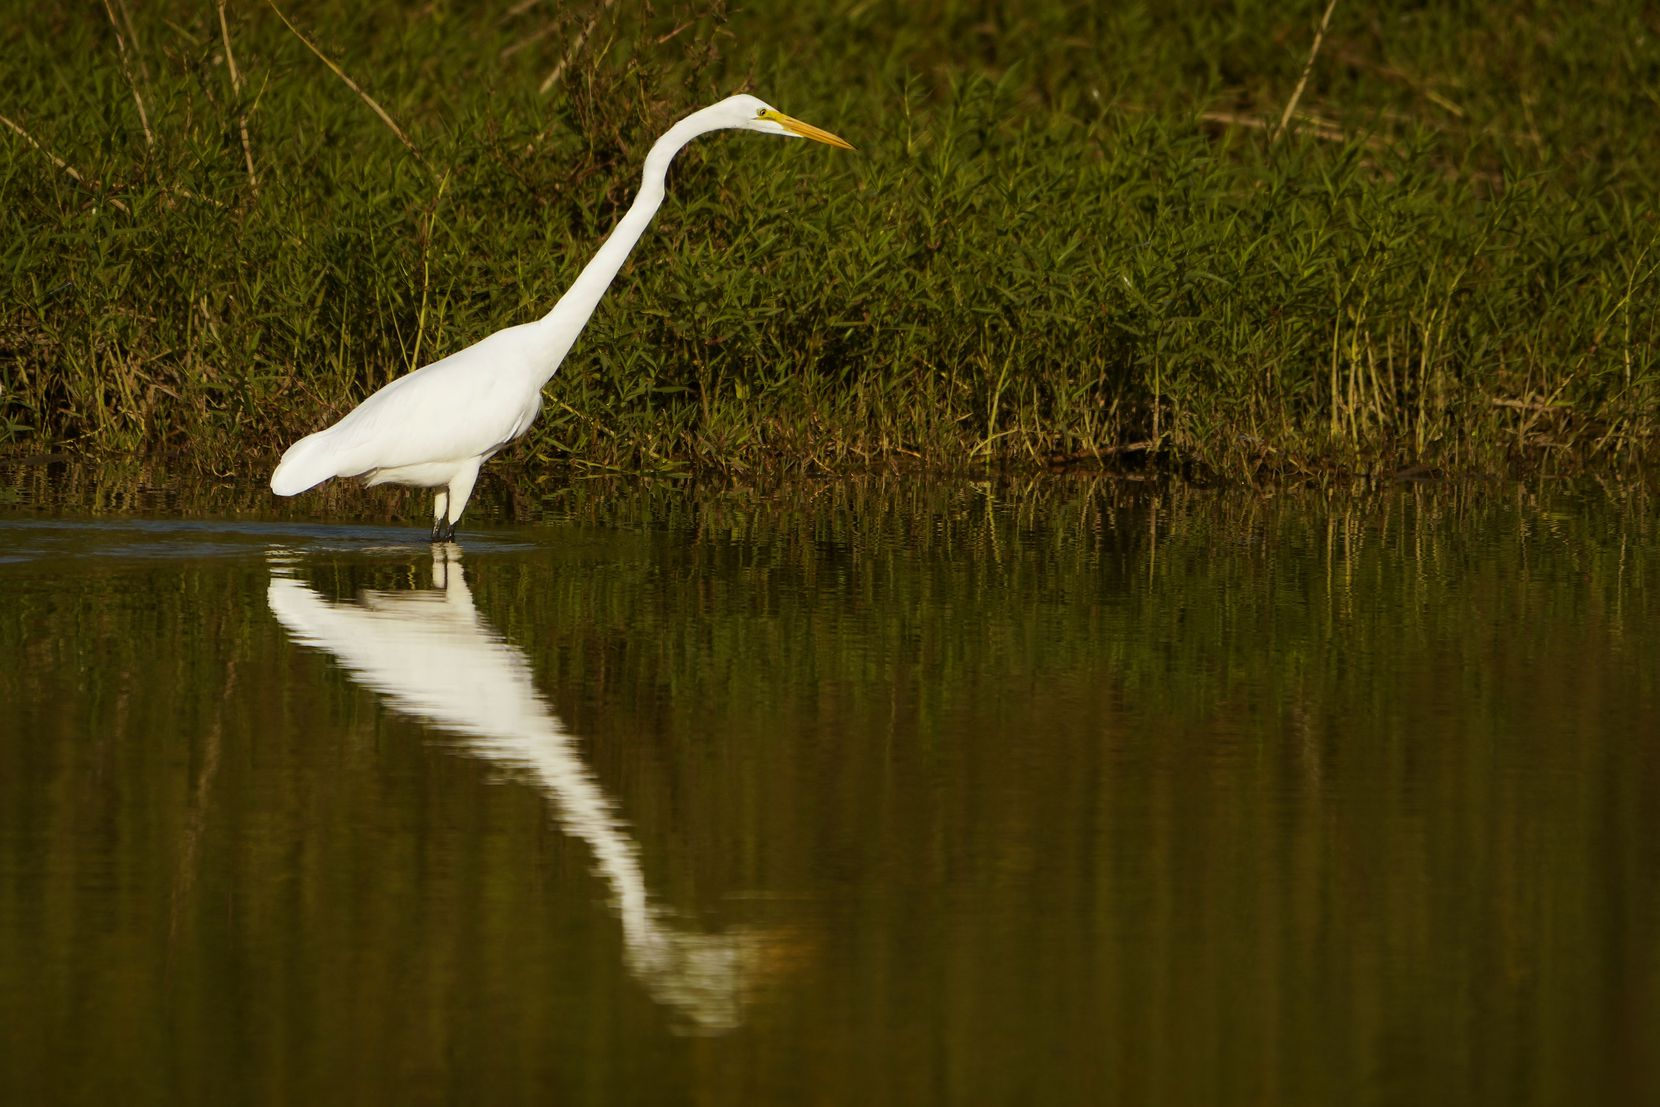 A great egret is seen in the Great Blue Heron Pond at Trinity River Audubon Center in Dallas.